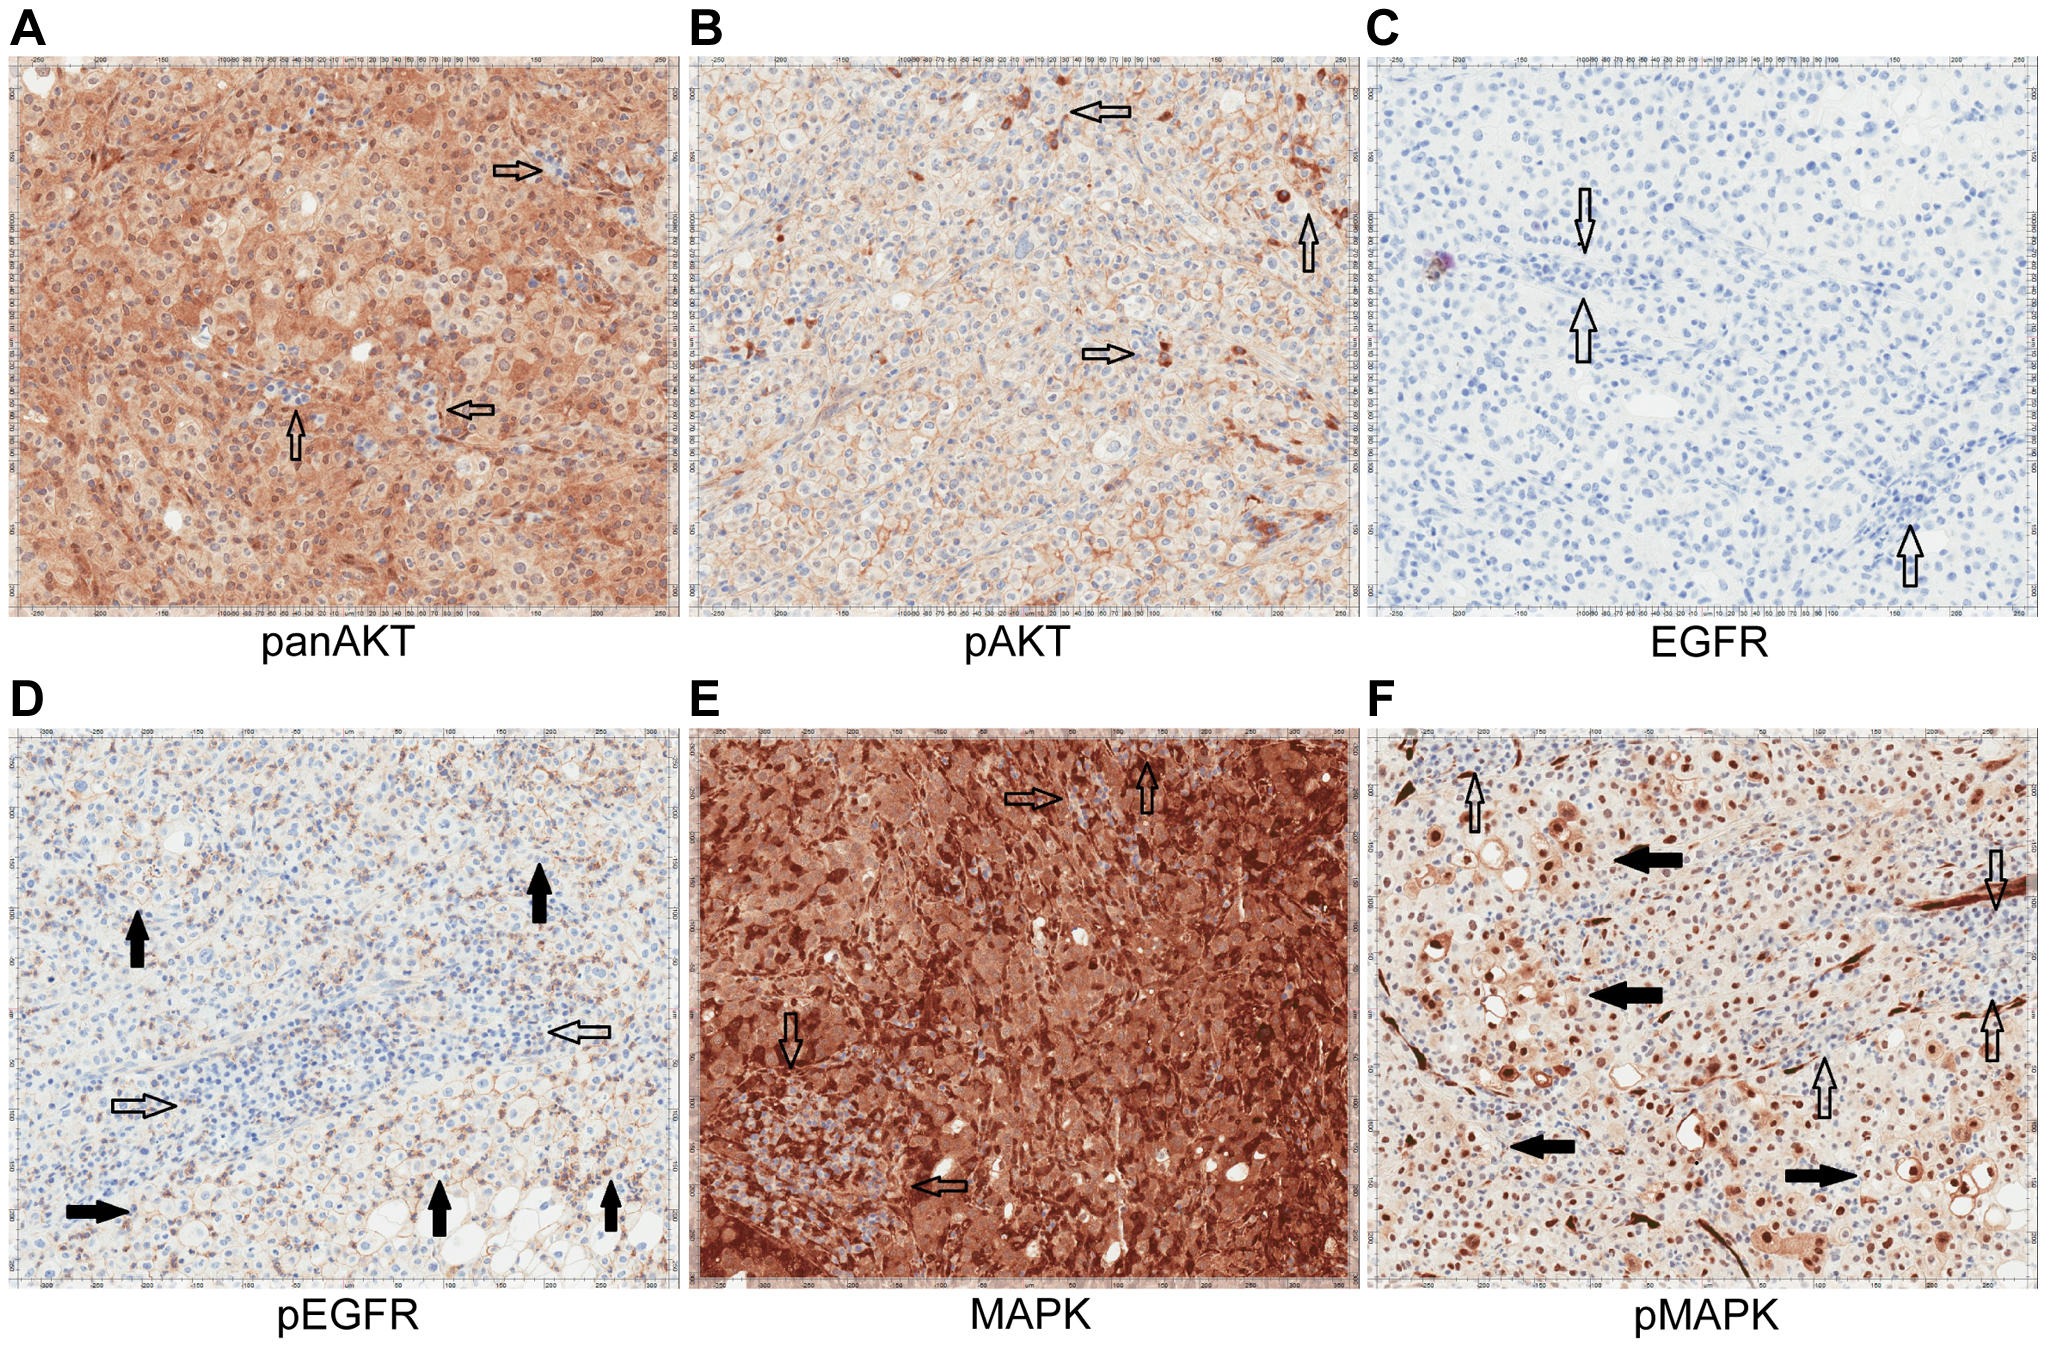 Immunohistochemistry of Patient 3's tumor demonstrating activation of the EGFR pathway.